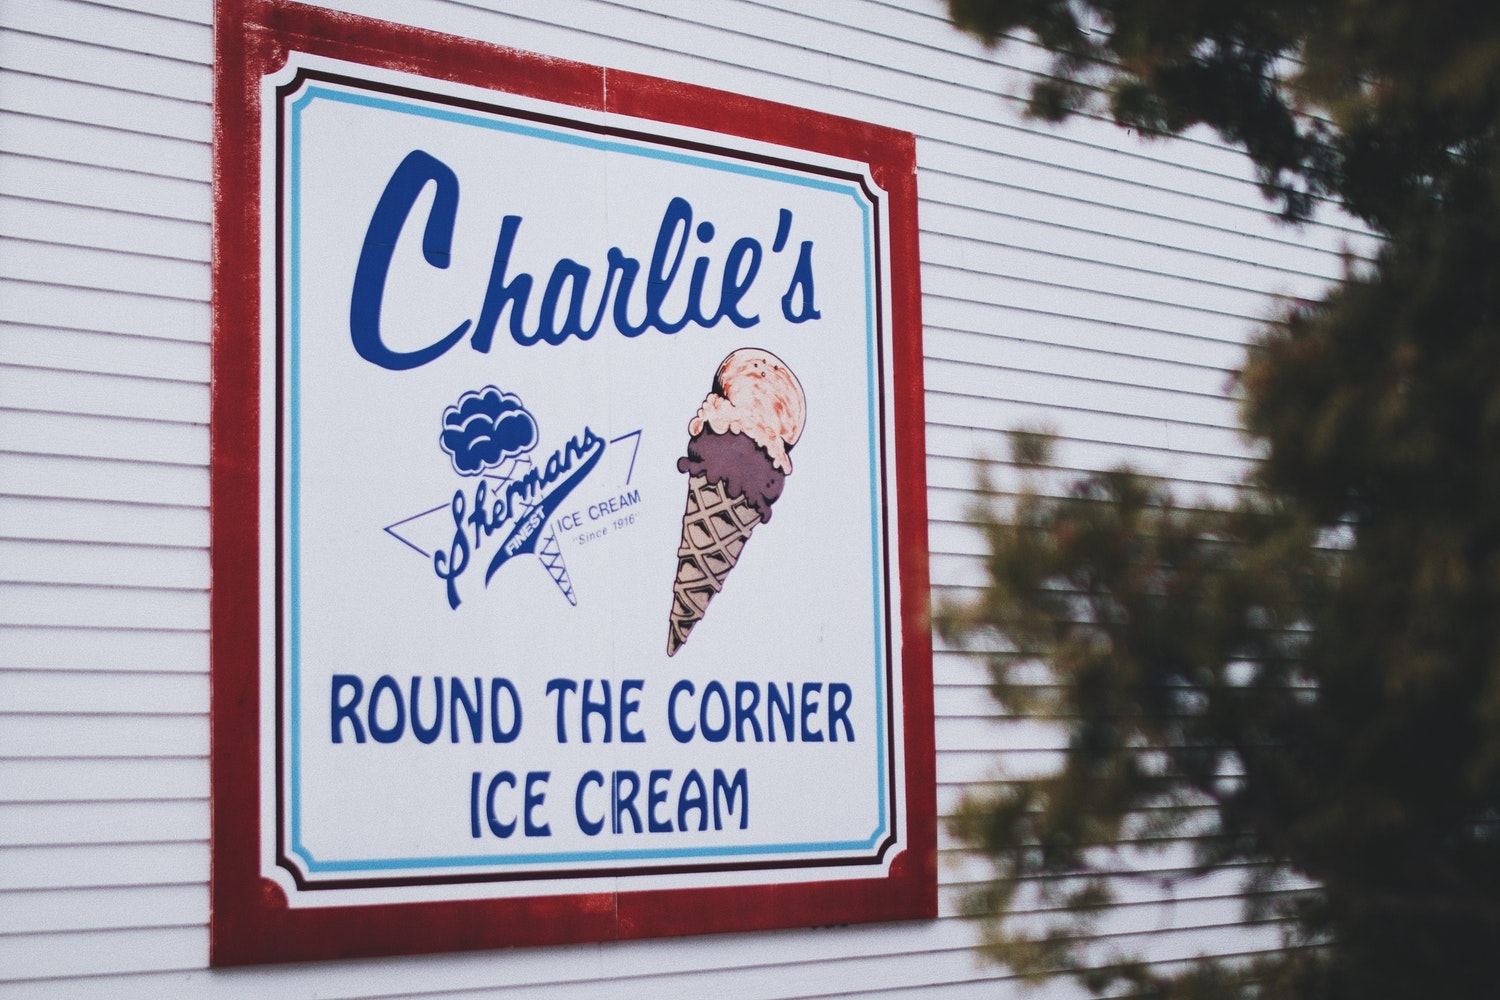 Charlie's round the corner ice cream sign